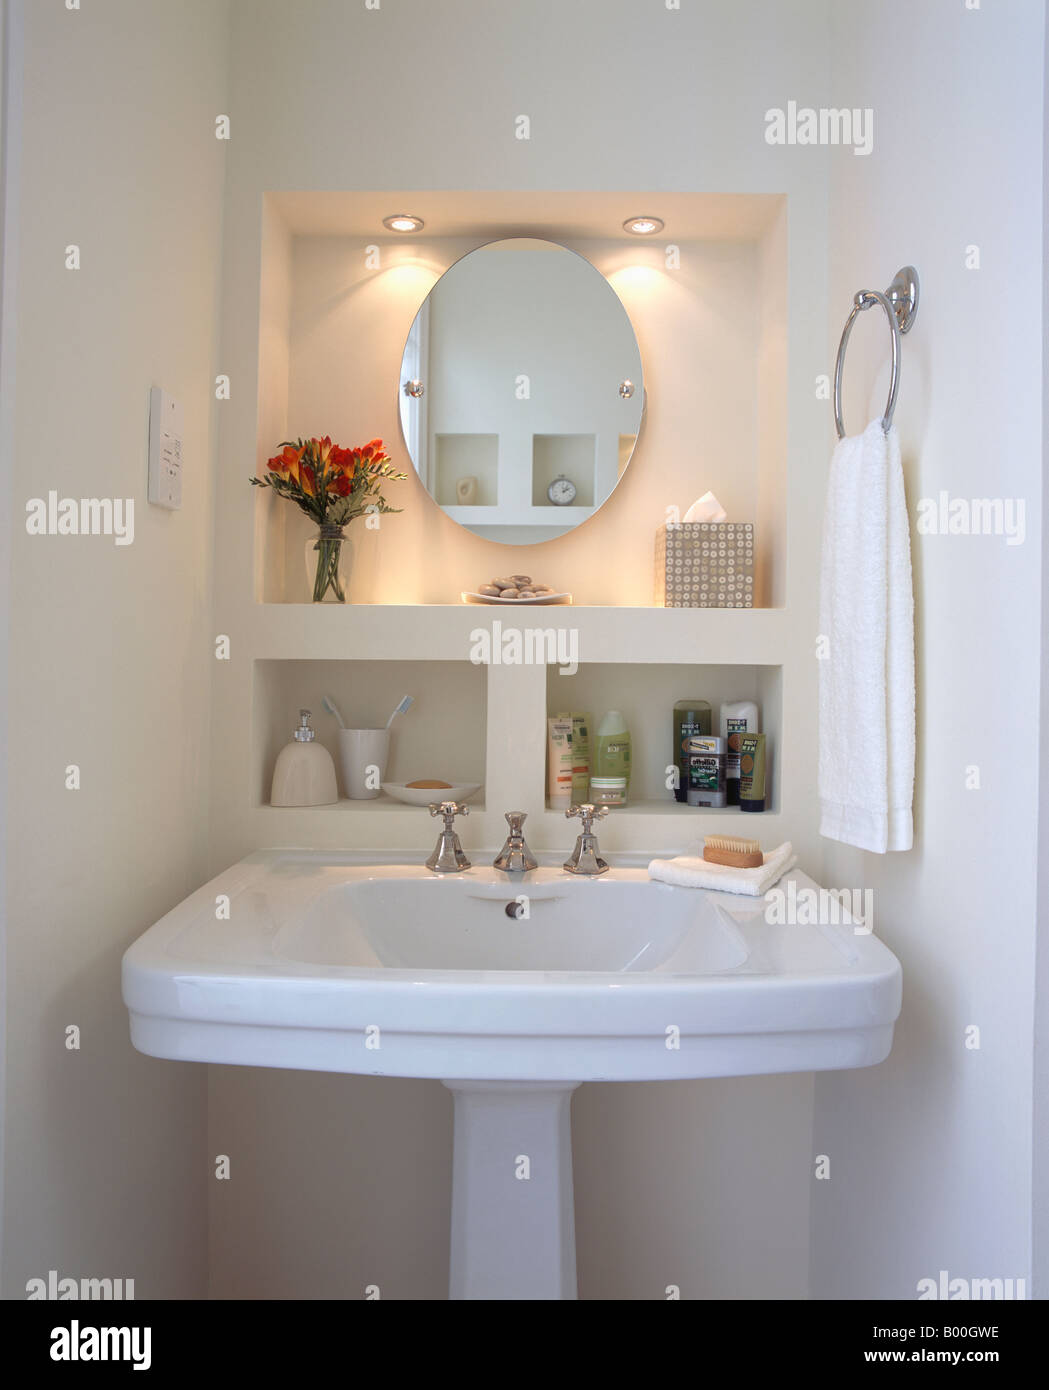 Downlighting Above Oval Mirror In Alcove Above White Pedestal Basin In  Modern Bathroom